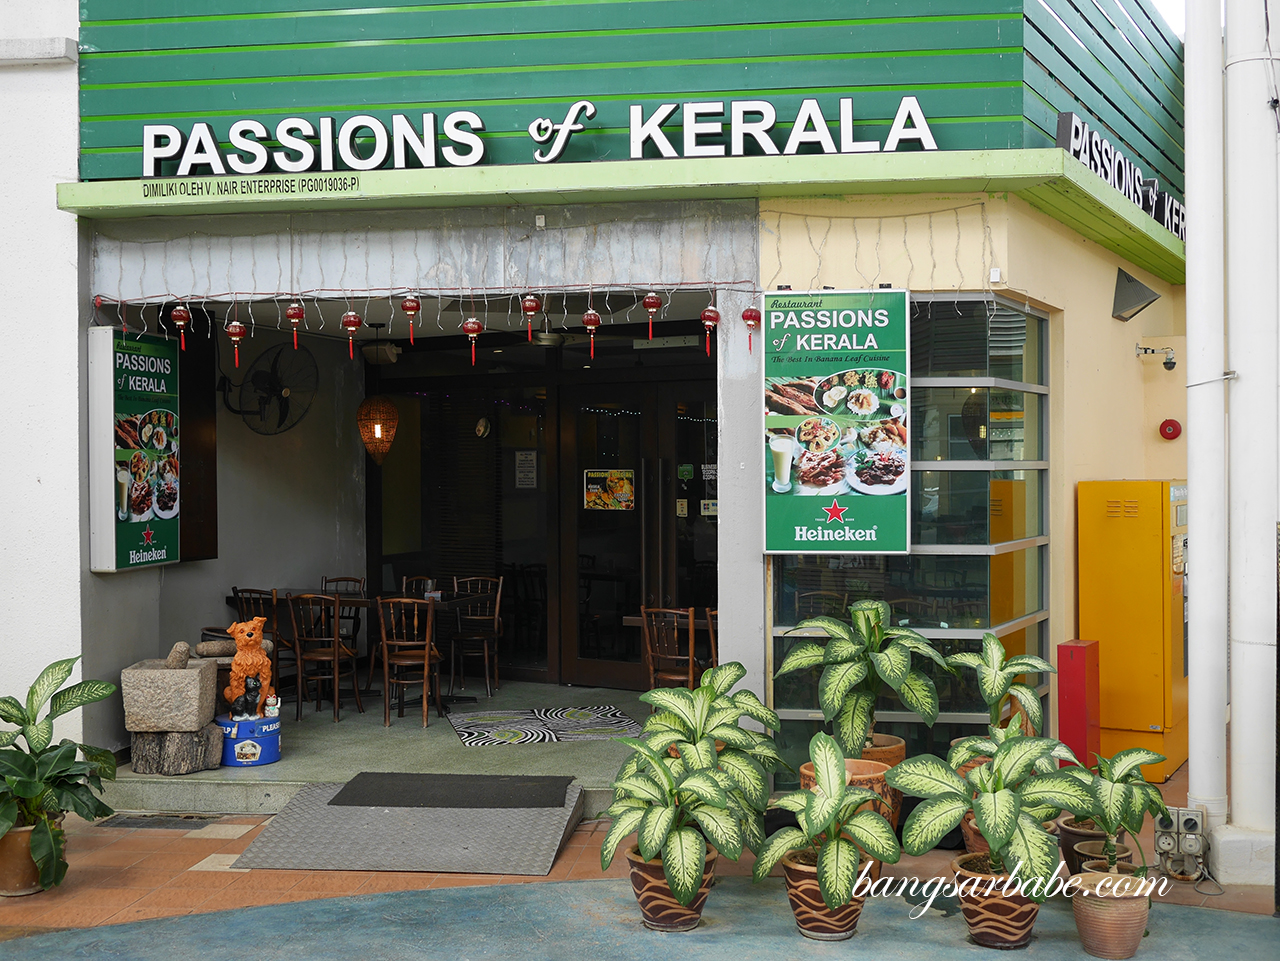 Passions of Kerala